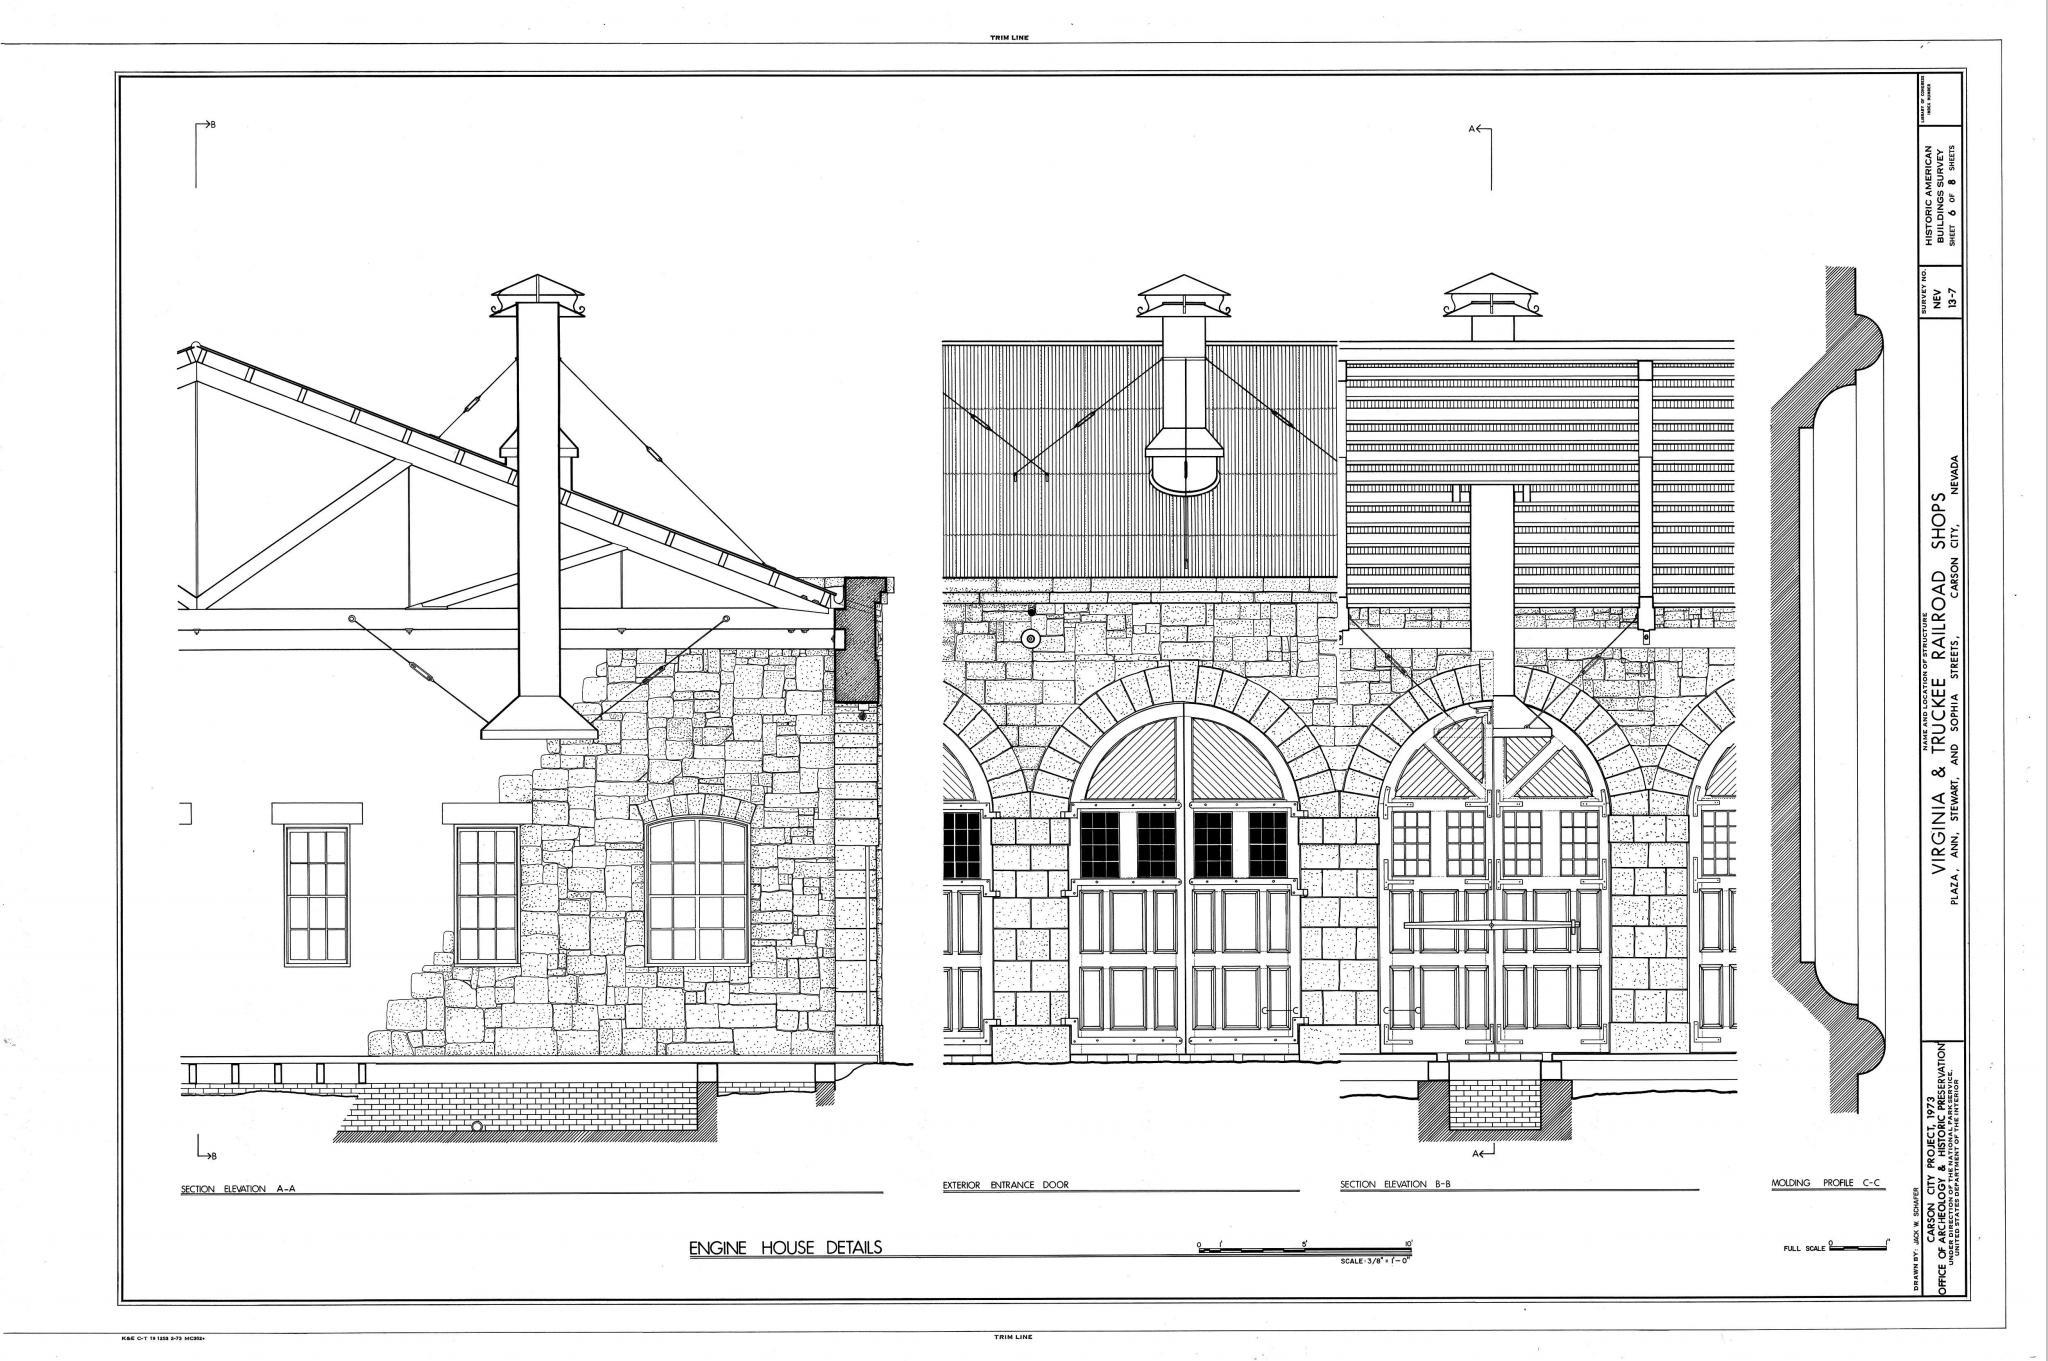 V&T Shops Engineering Drawing : Photo Details :: The